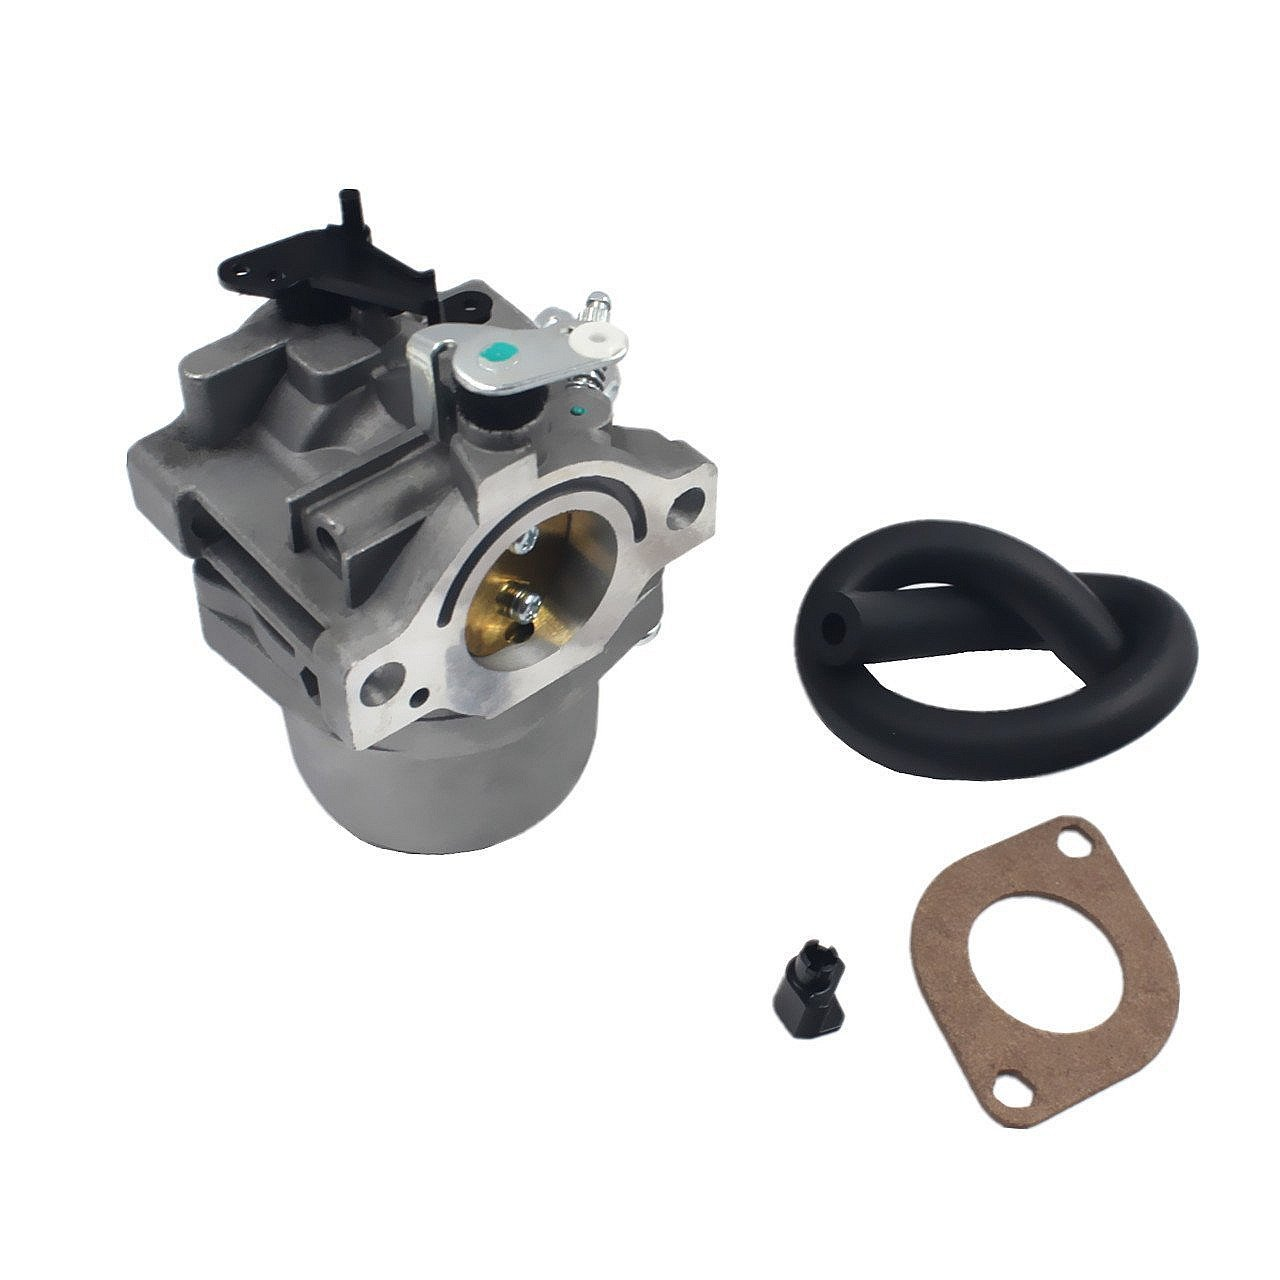 iFJF 799728 Carburetor for Nikki Briggs & Stratton Replaces 495706 494392 498134 498027 494502 499161 496592 498231(P26S)